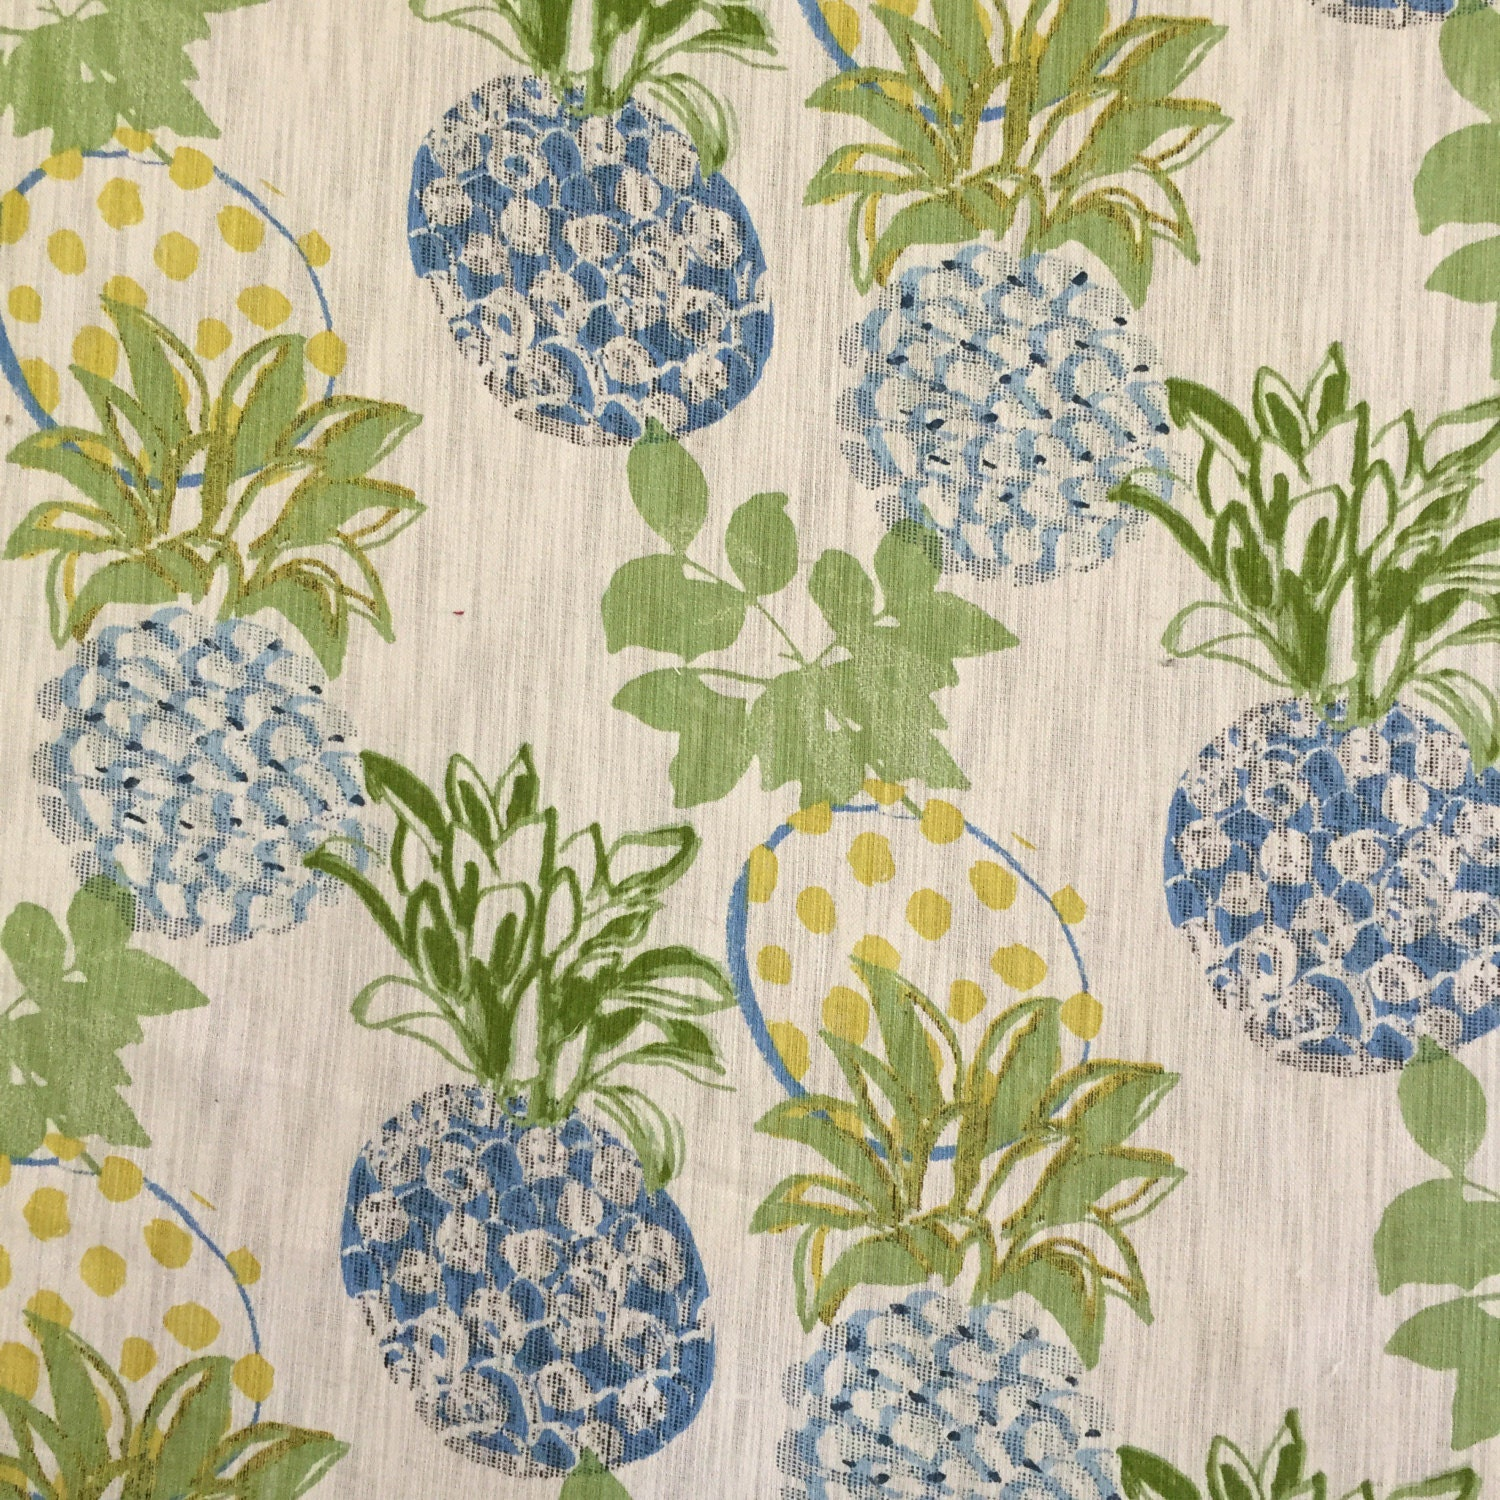 Pineapple Blue Green Blue Yellow Fabric By The Yard